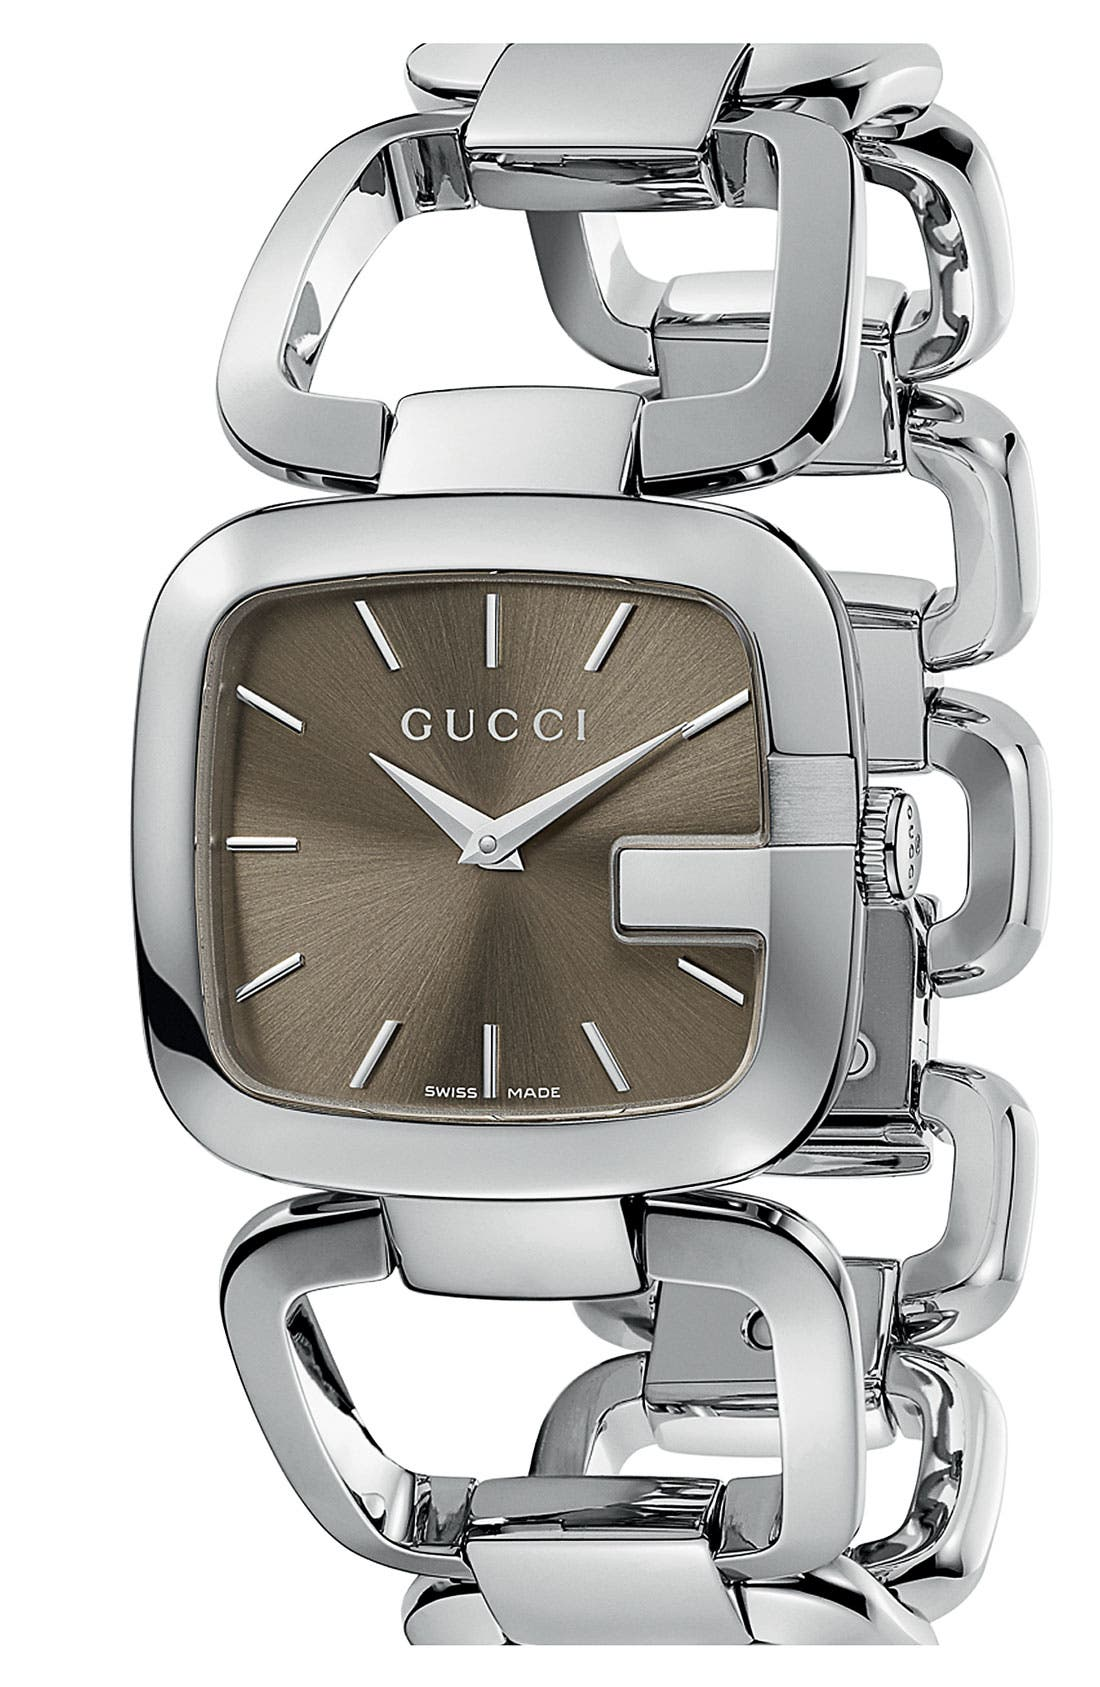 Alternate Image 1 Selected - Gucci 'G-Gucci' Bracelet Watch, 32mm x 30mm